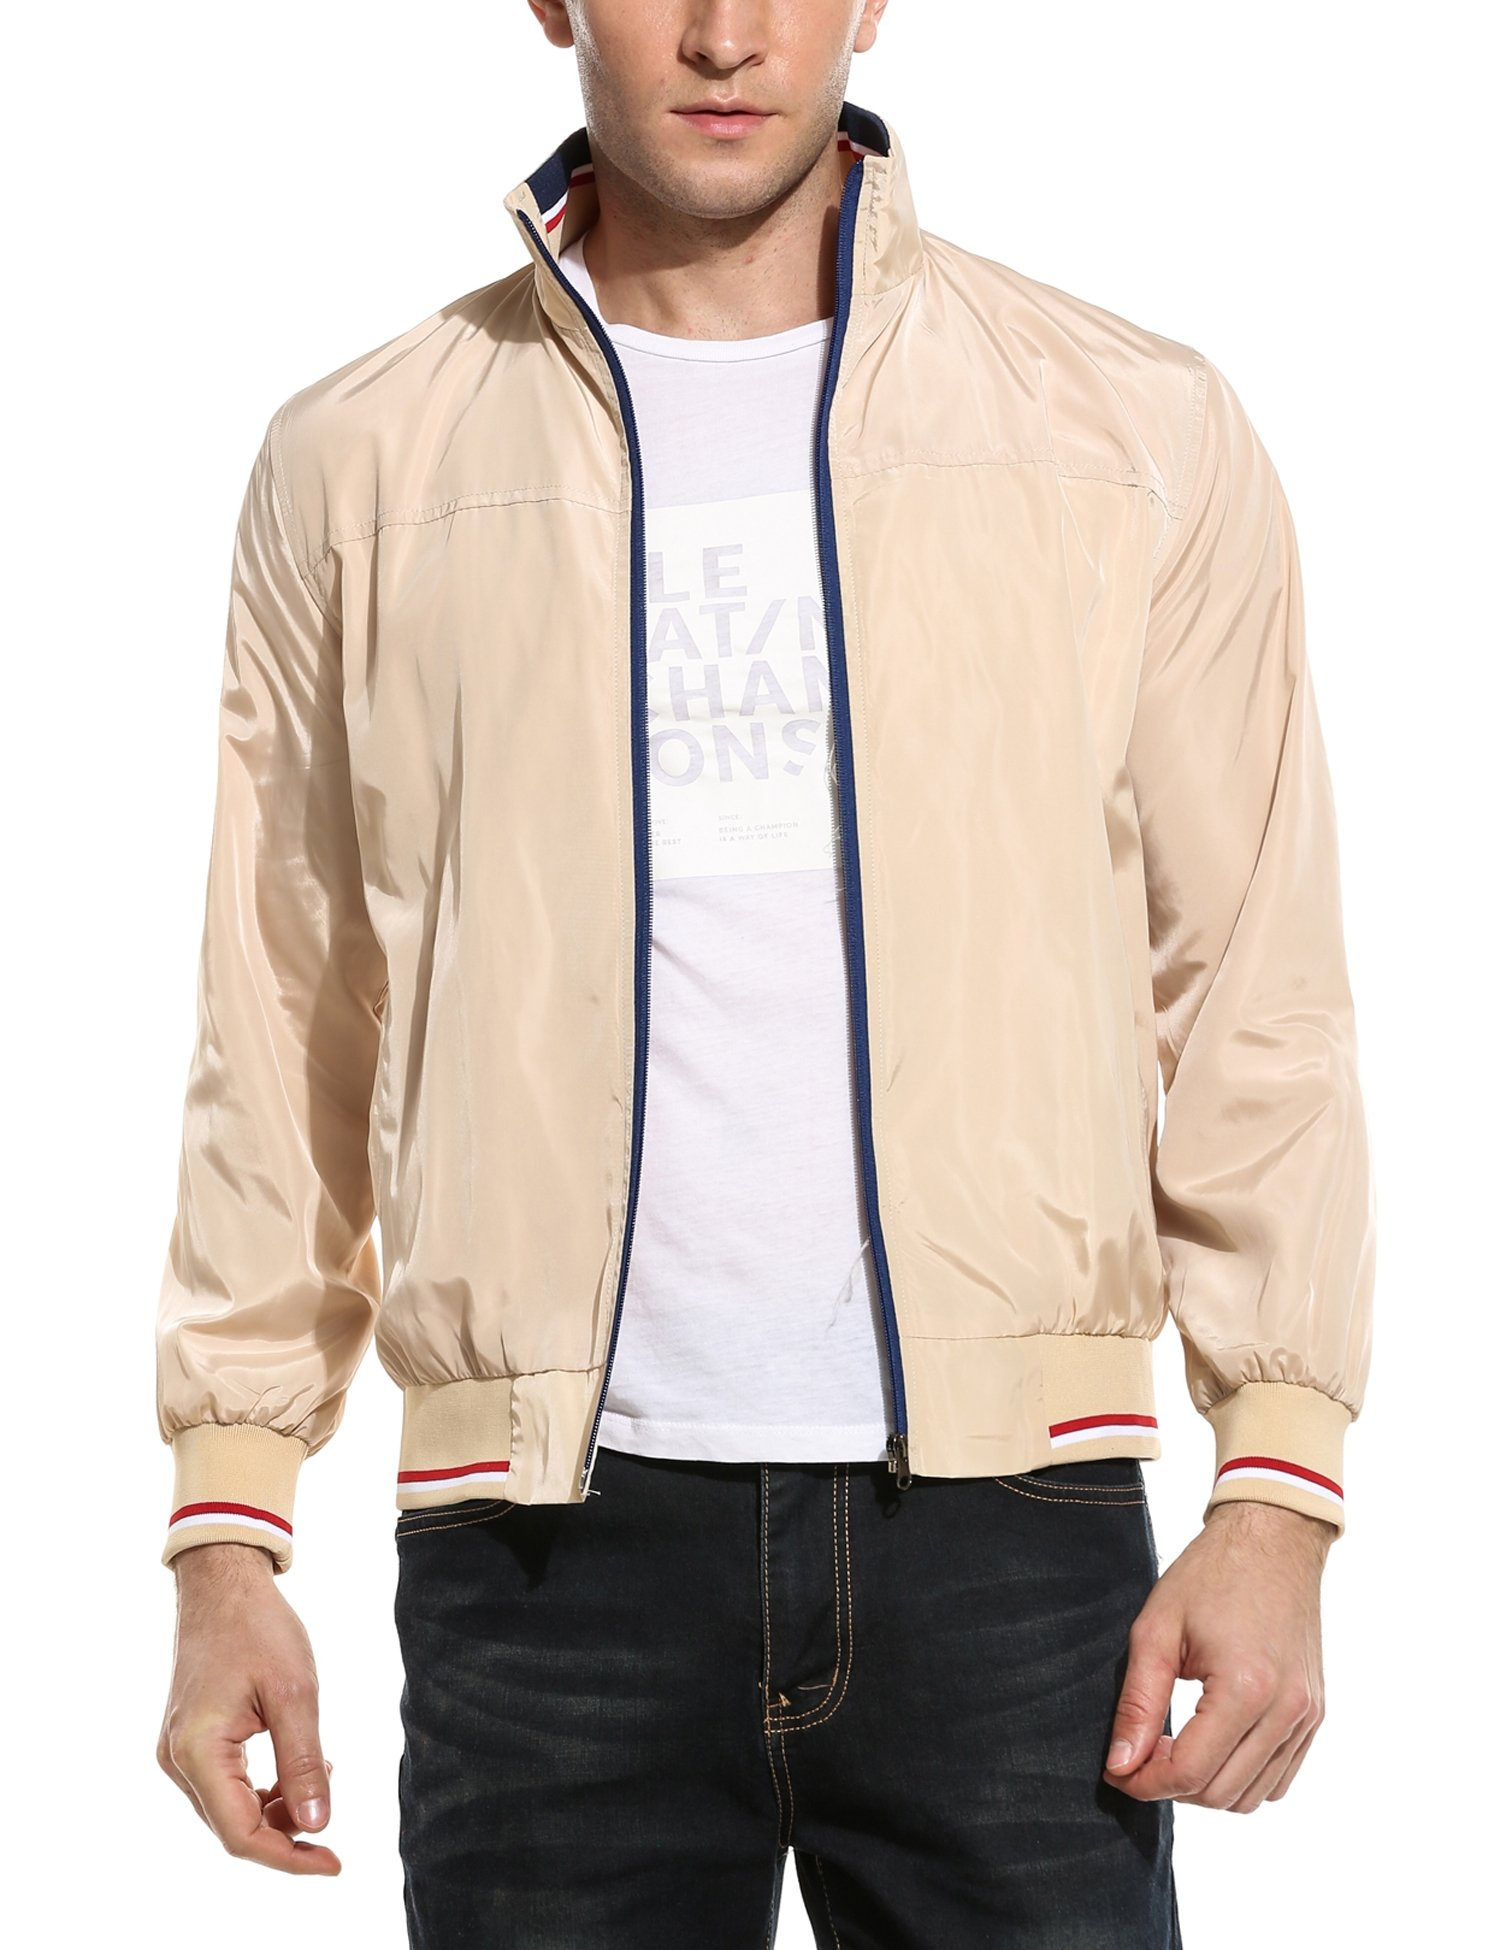 Coofandy New Men Casual High Neck Thin Striped Lightweight Slim Long Sleeve Bomber Jacket Apricot X-Large